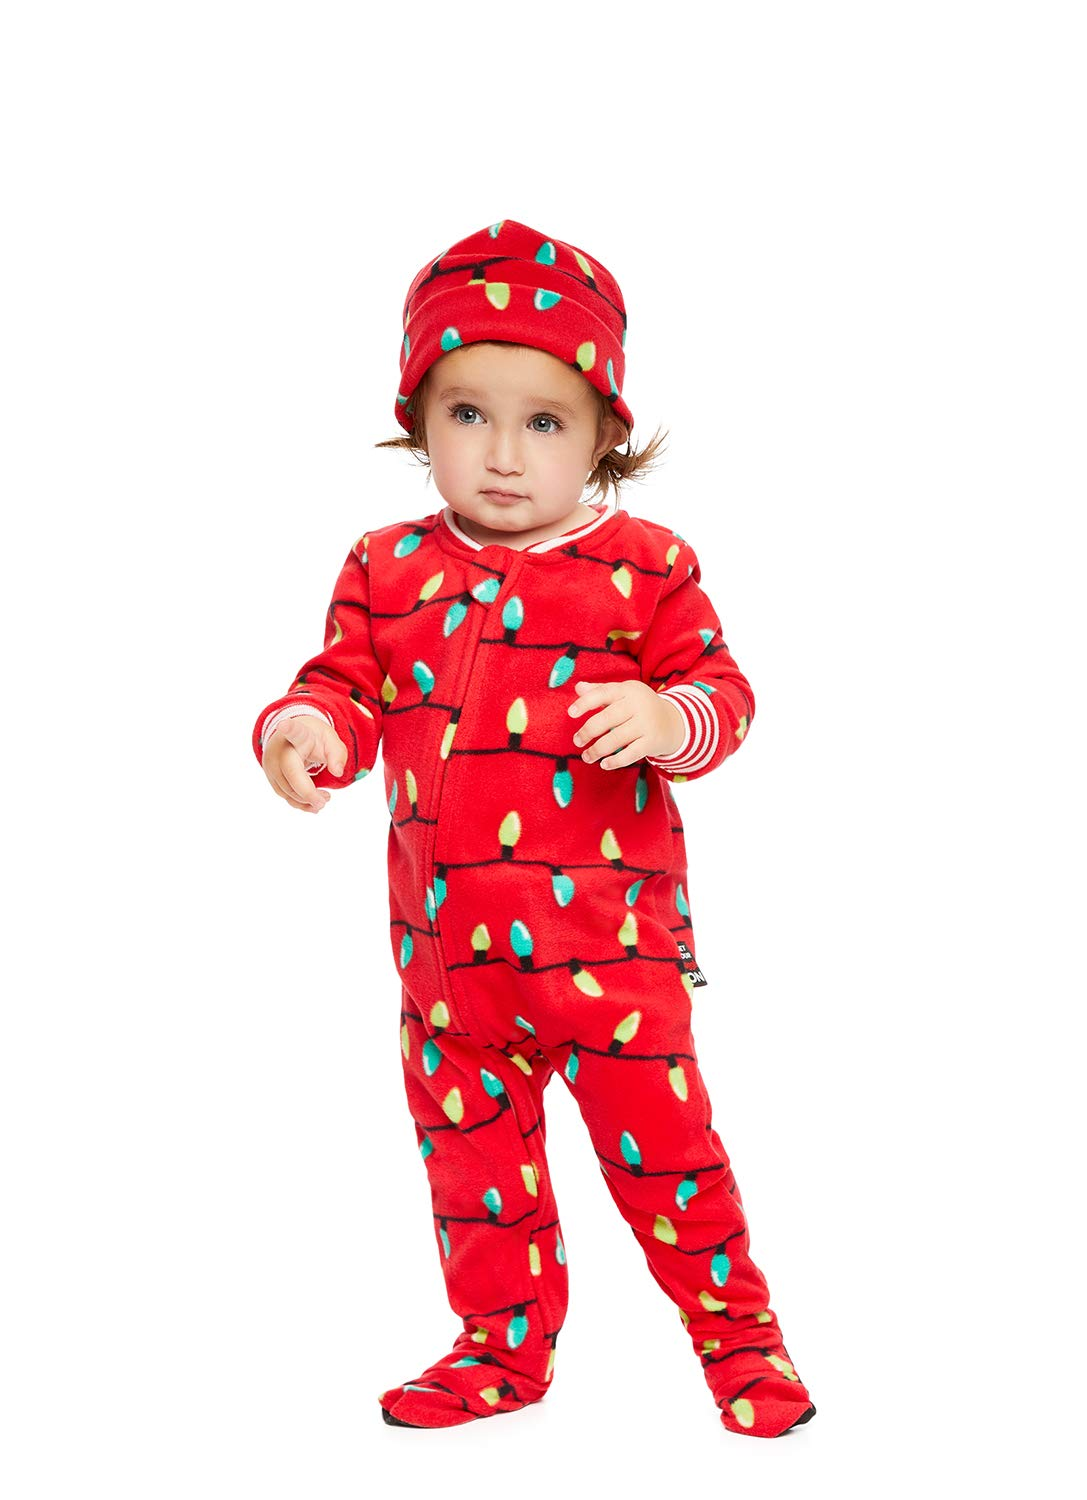 Family Holiday Merry Litmas Matching Pajamas | Baby Onesie Size 18 Jammin Jammies